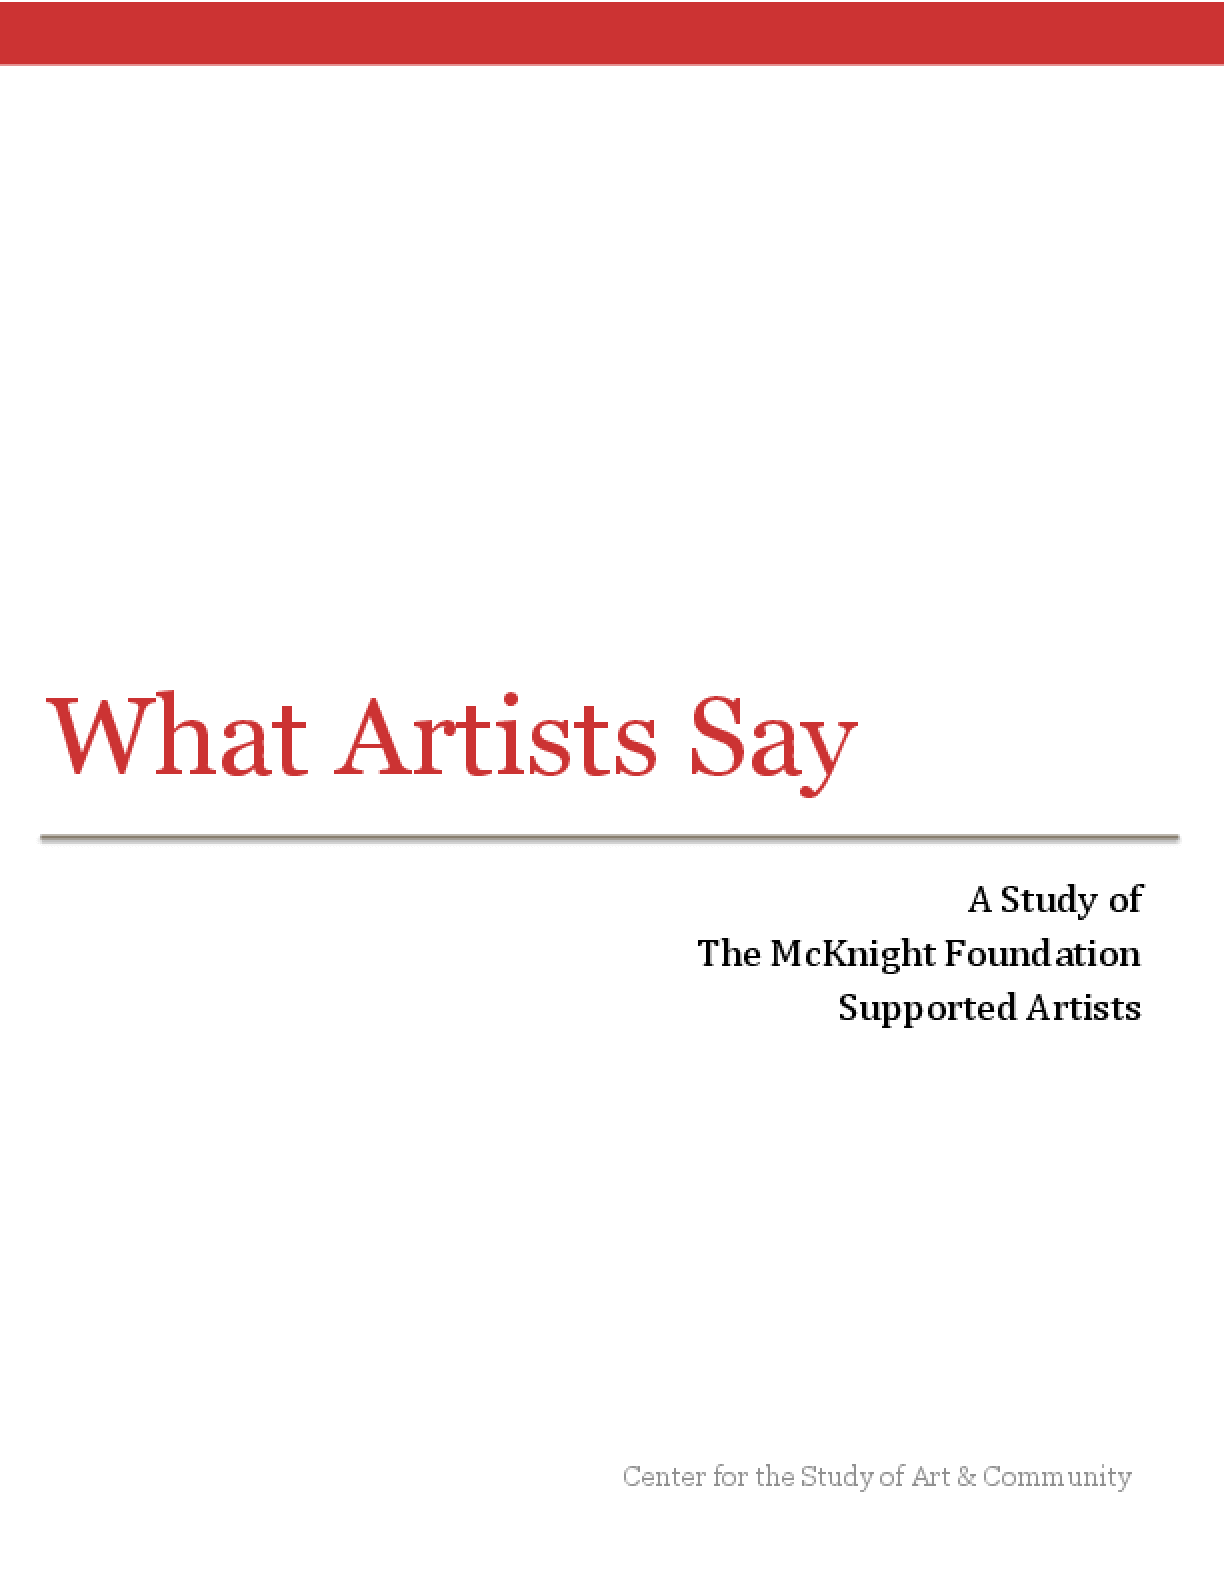 What Artists Say: A Study of The McKnight Foundation Supported Artists